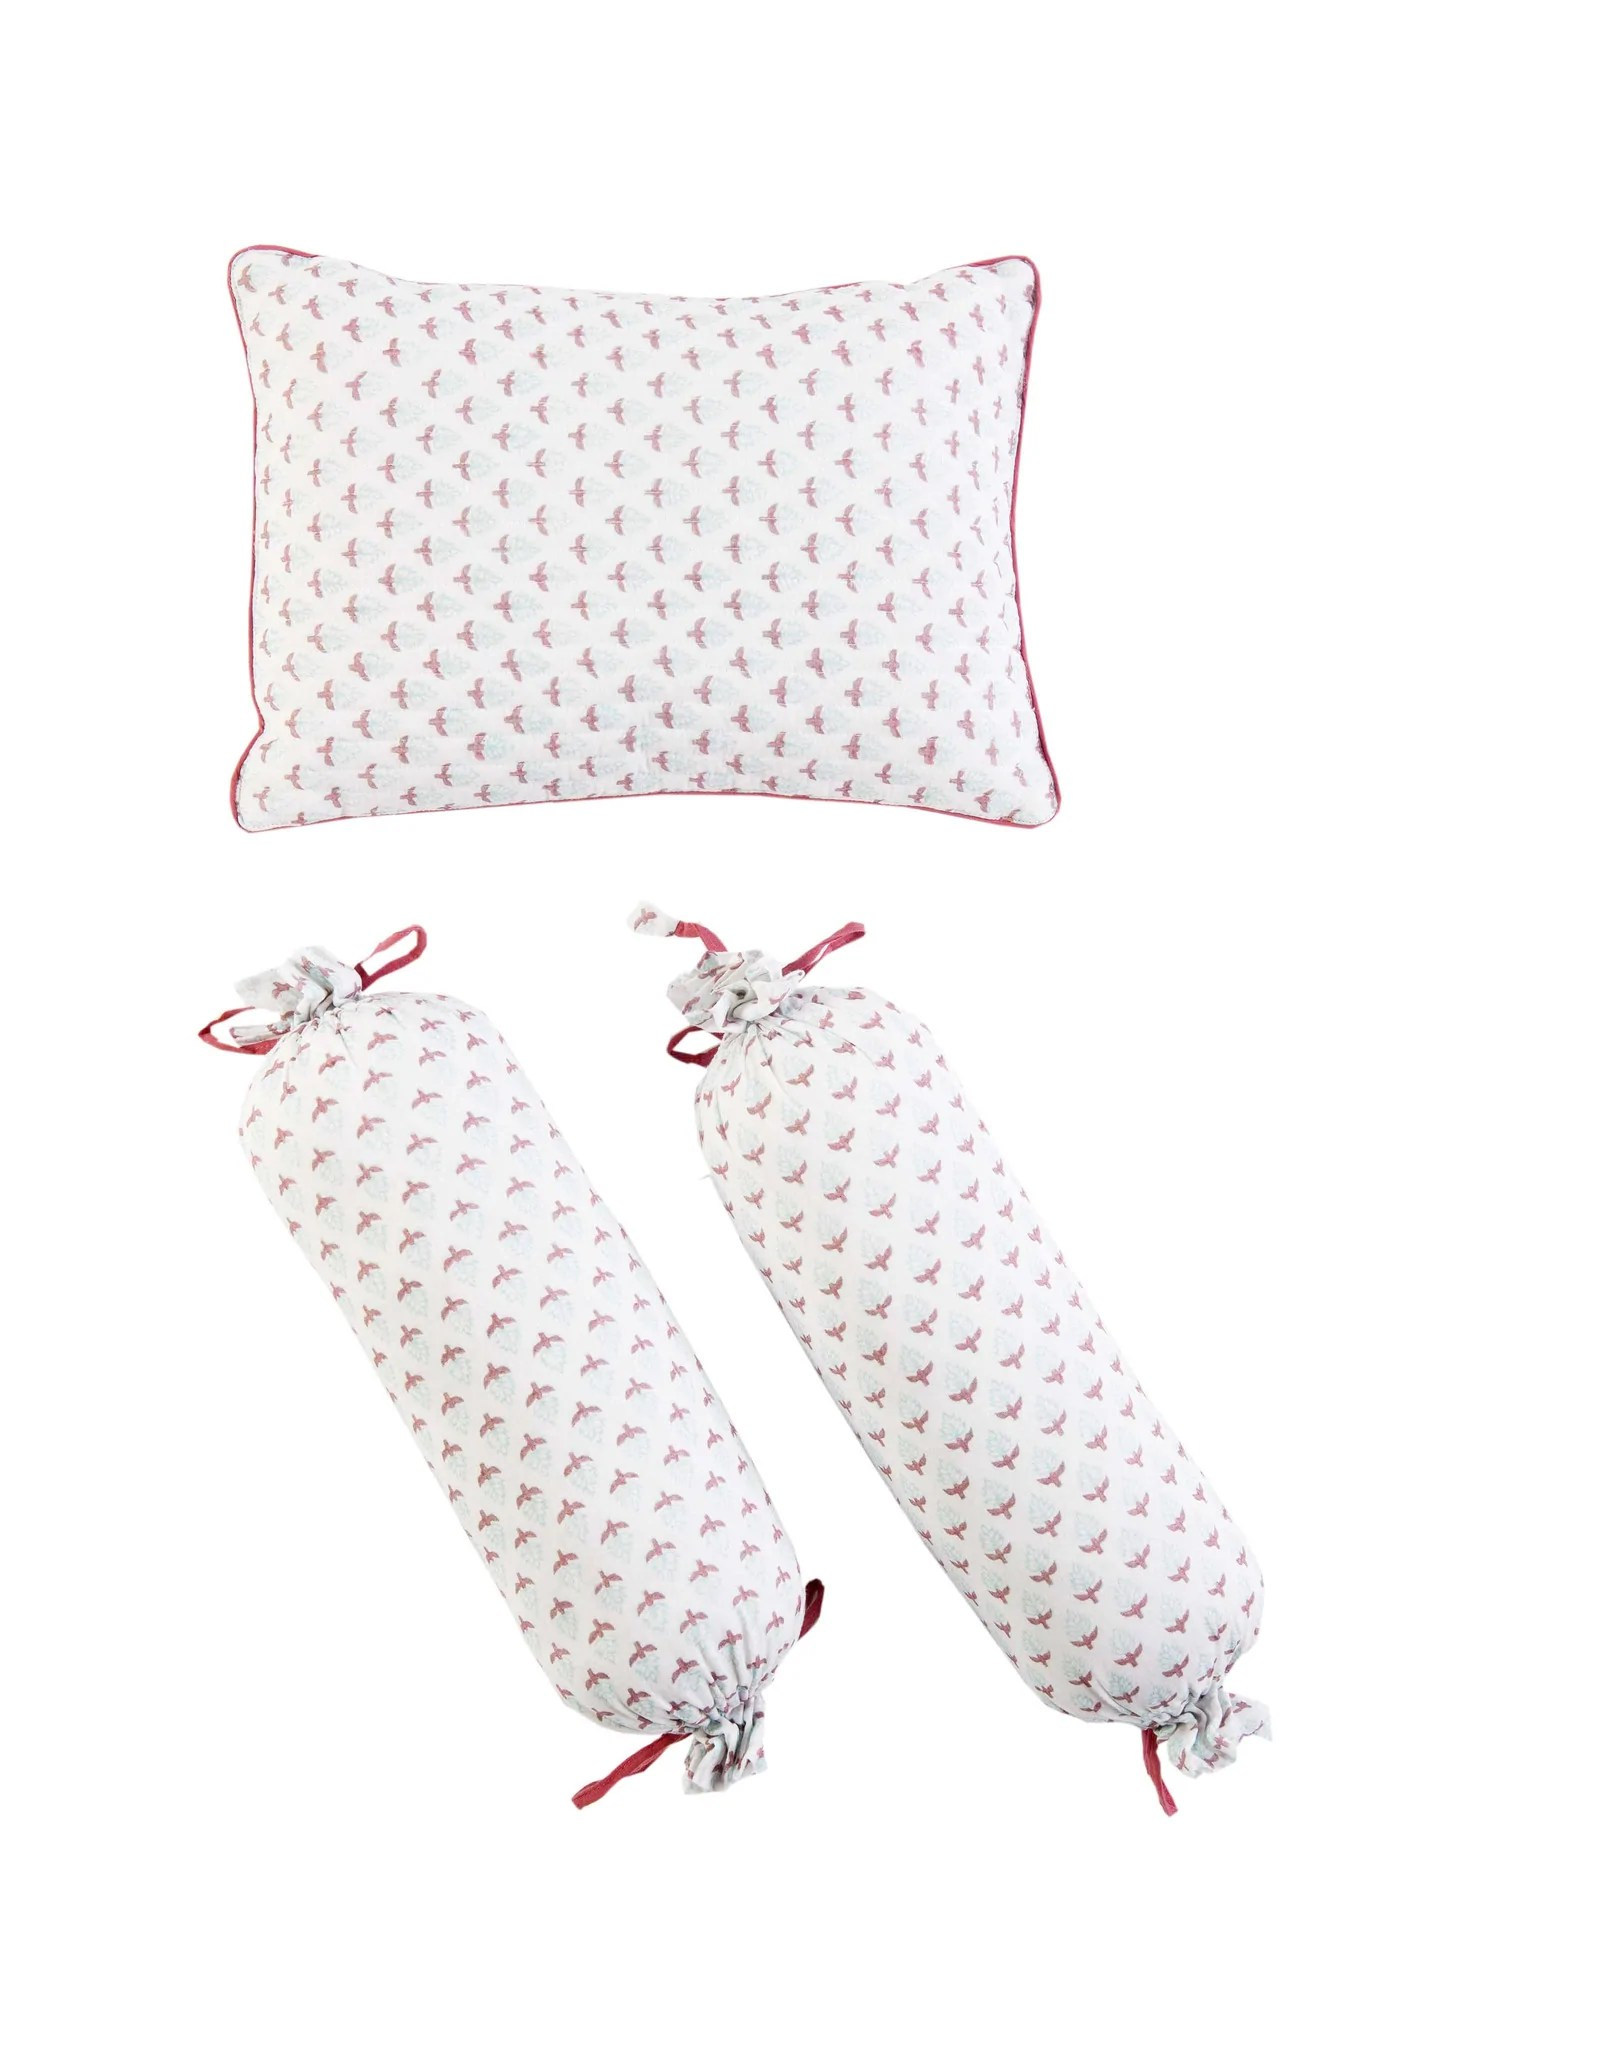 Celeep Baby Toddler Pillow Set [4 Piece Set] - 13